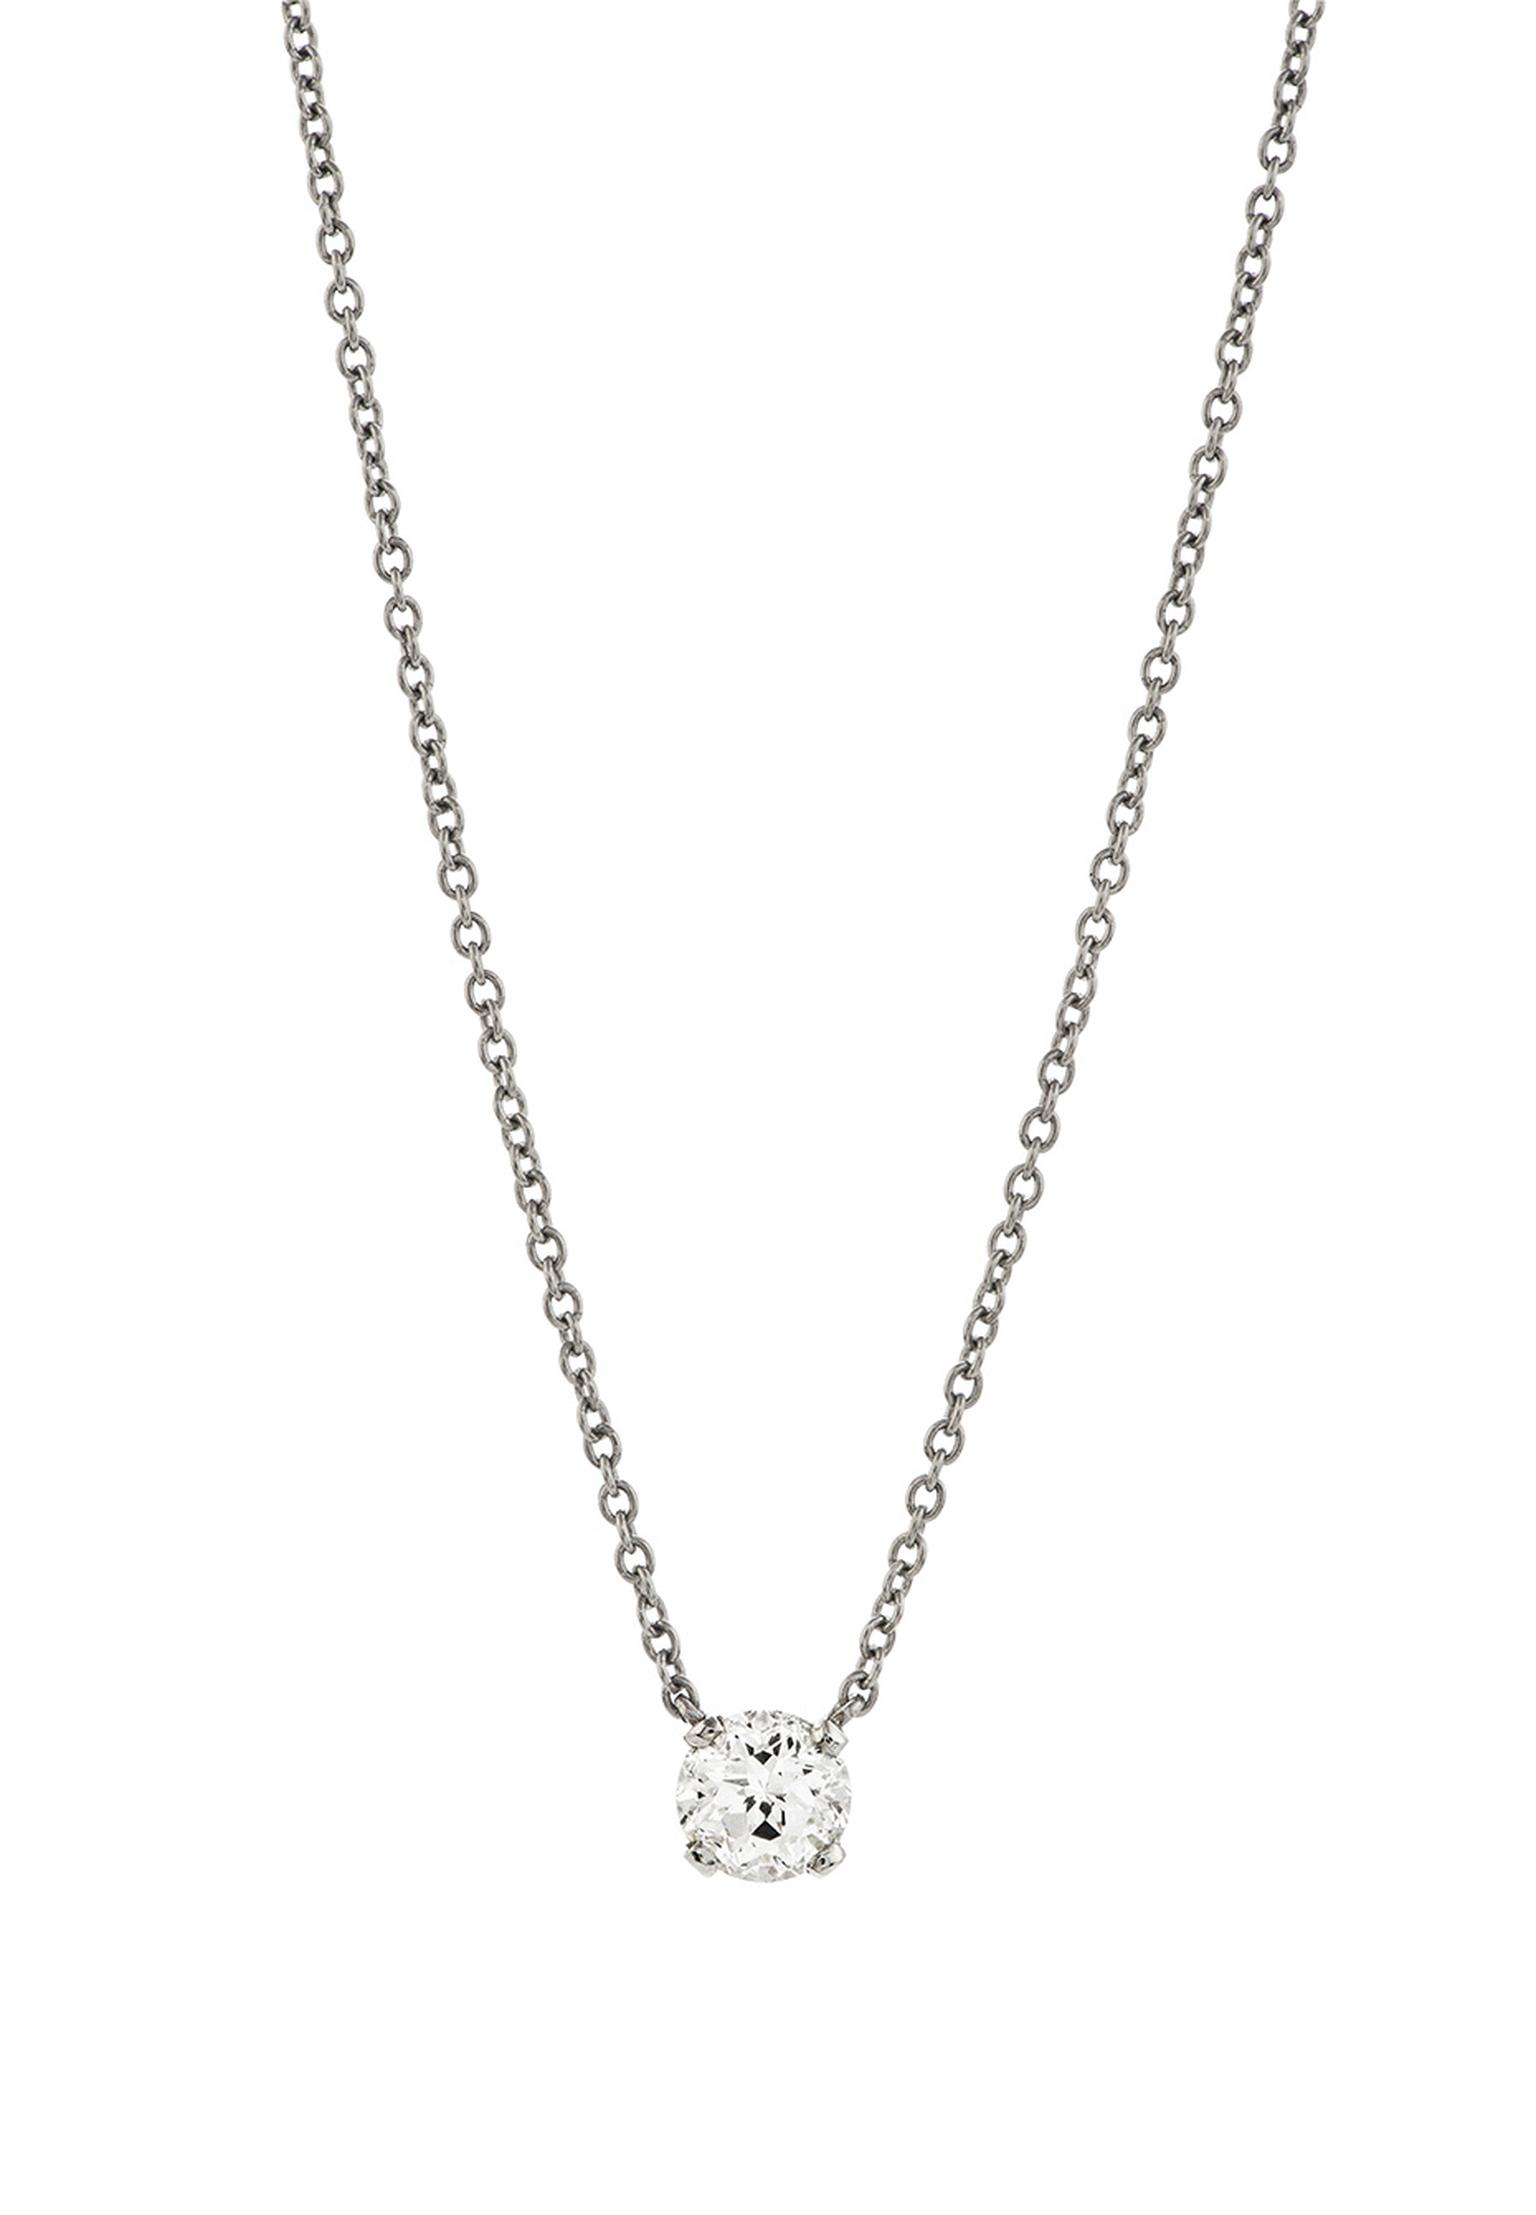 Garrard Eternal Cut solitaire diamond necklace